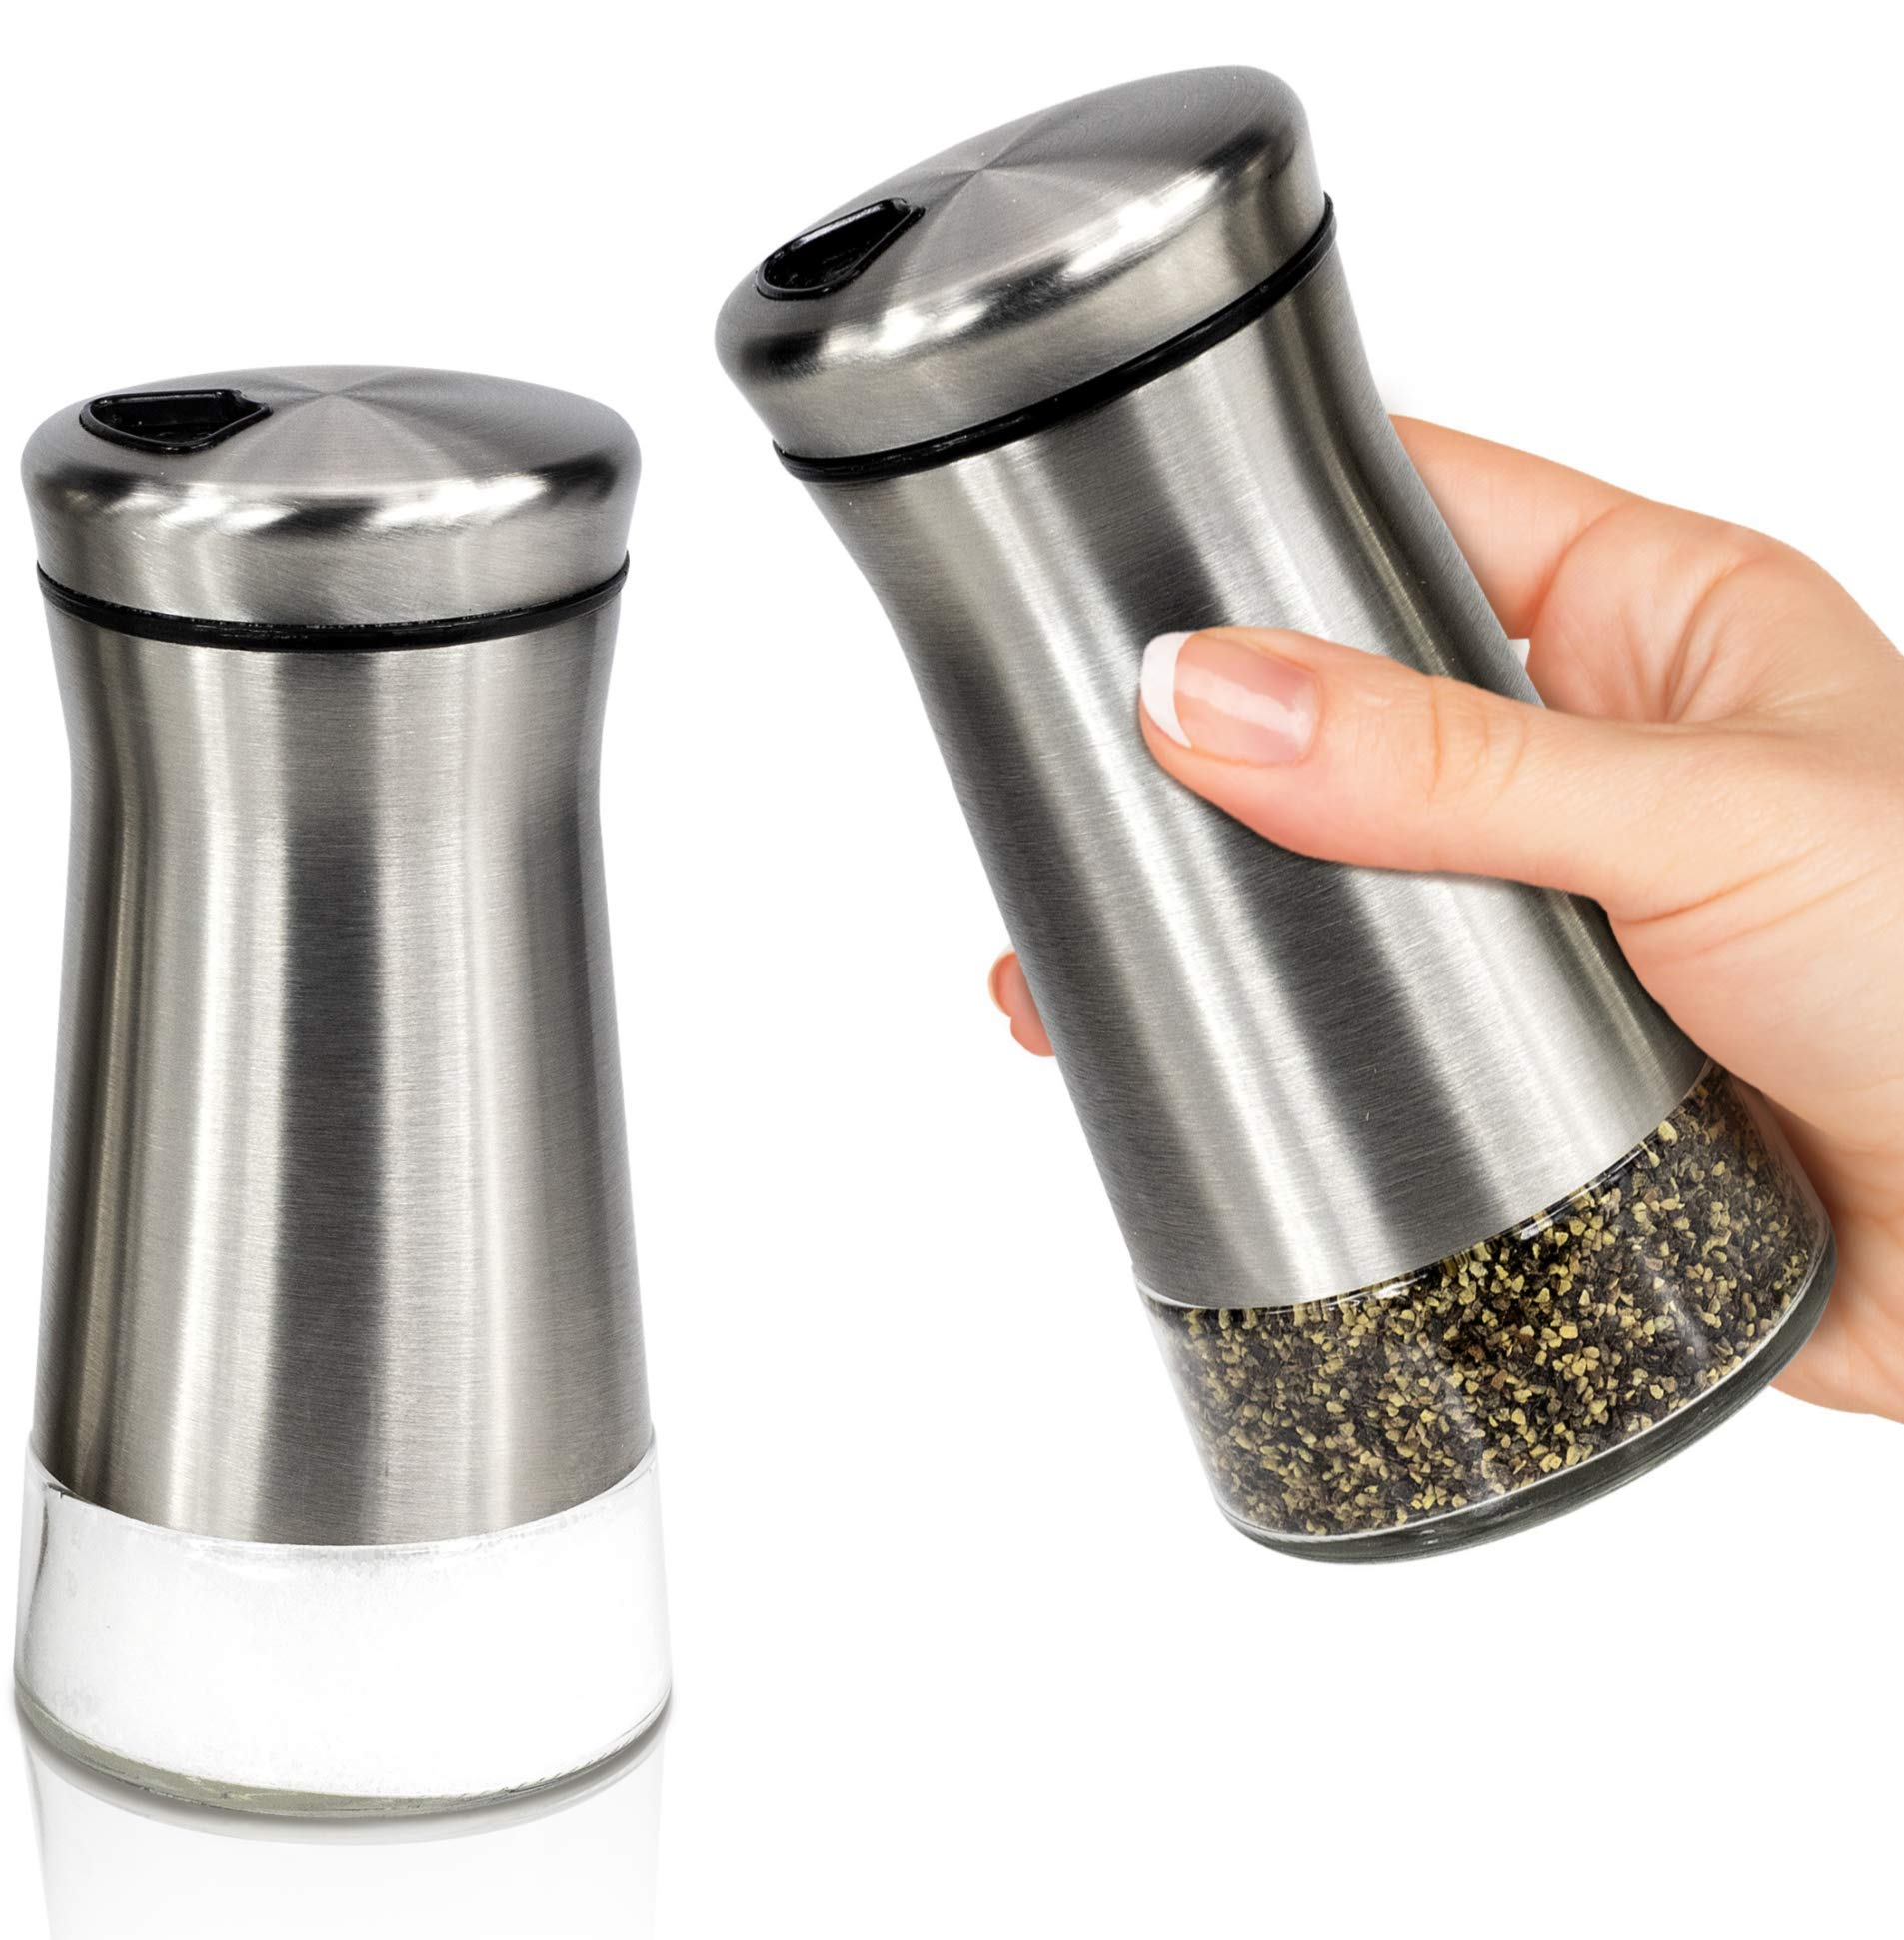 Elegant Salt and Pepper Shakers With Adjustable Pour Holes - Perfect Dispenser Set for your Salts by KIBAGA